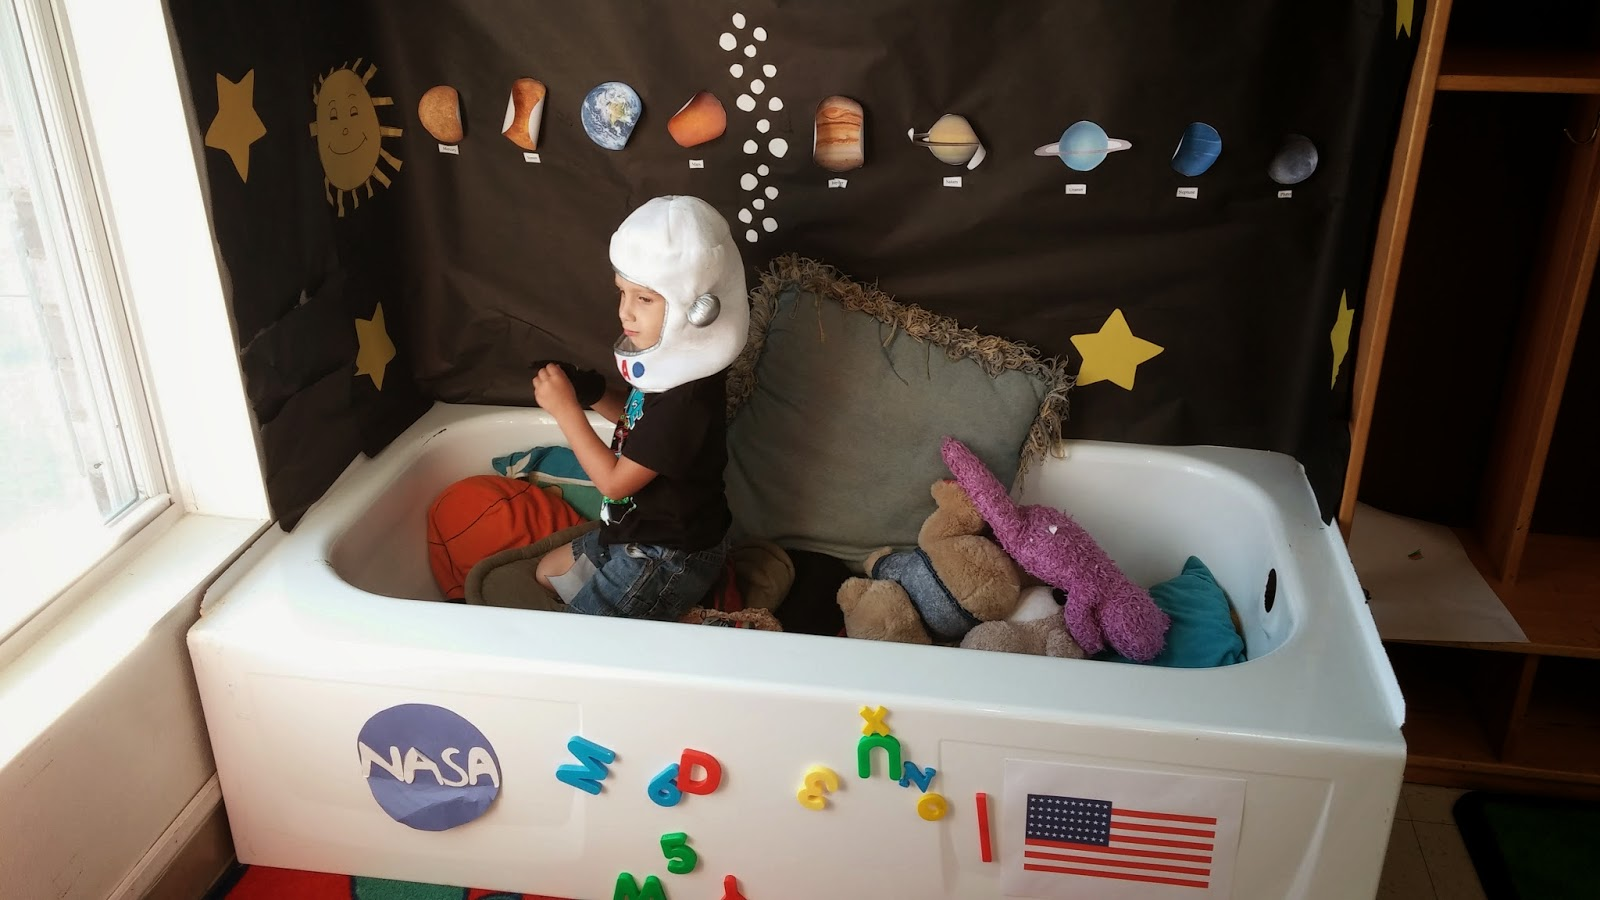 kid's space ship, The Pa-Paw Patch, Vale NC daycare, space preschool theme